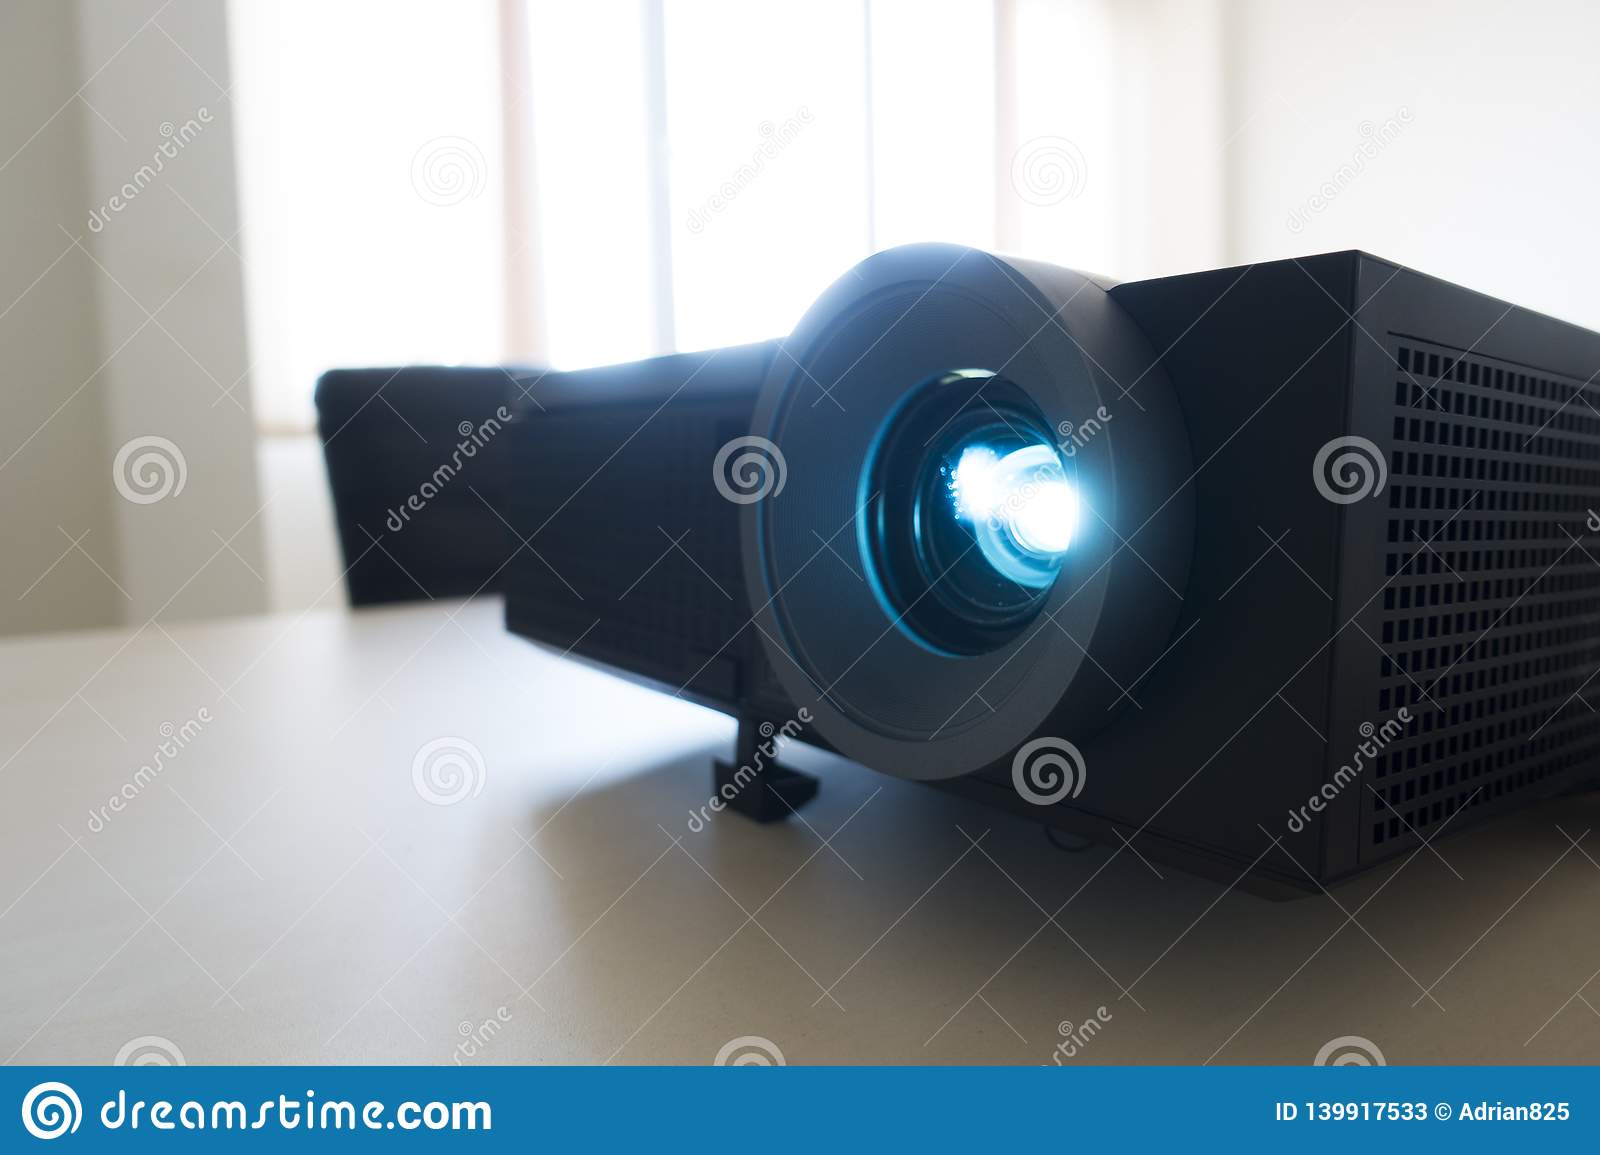 Video projector in business meeting, projecting a presentation